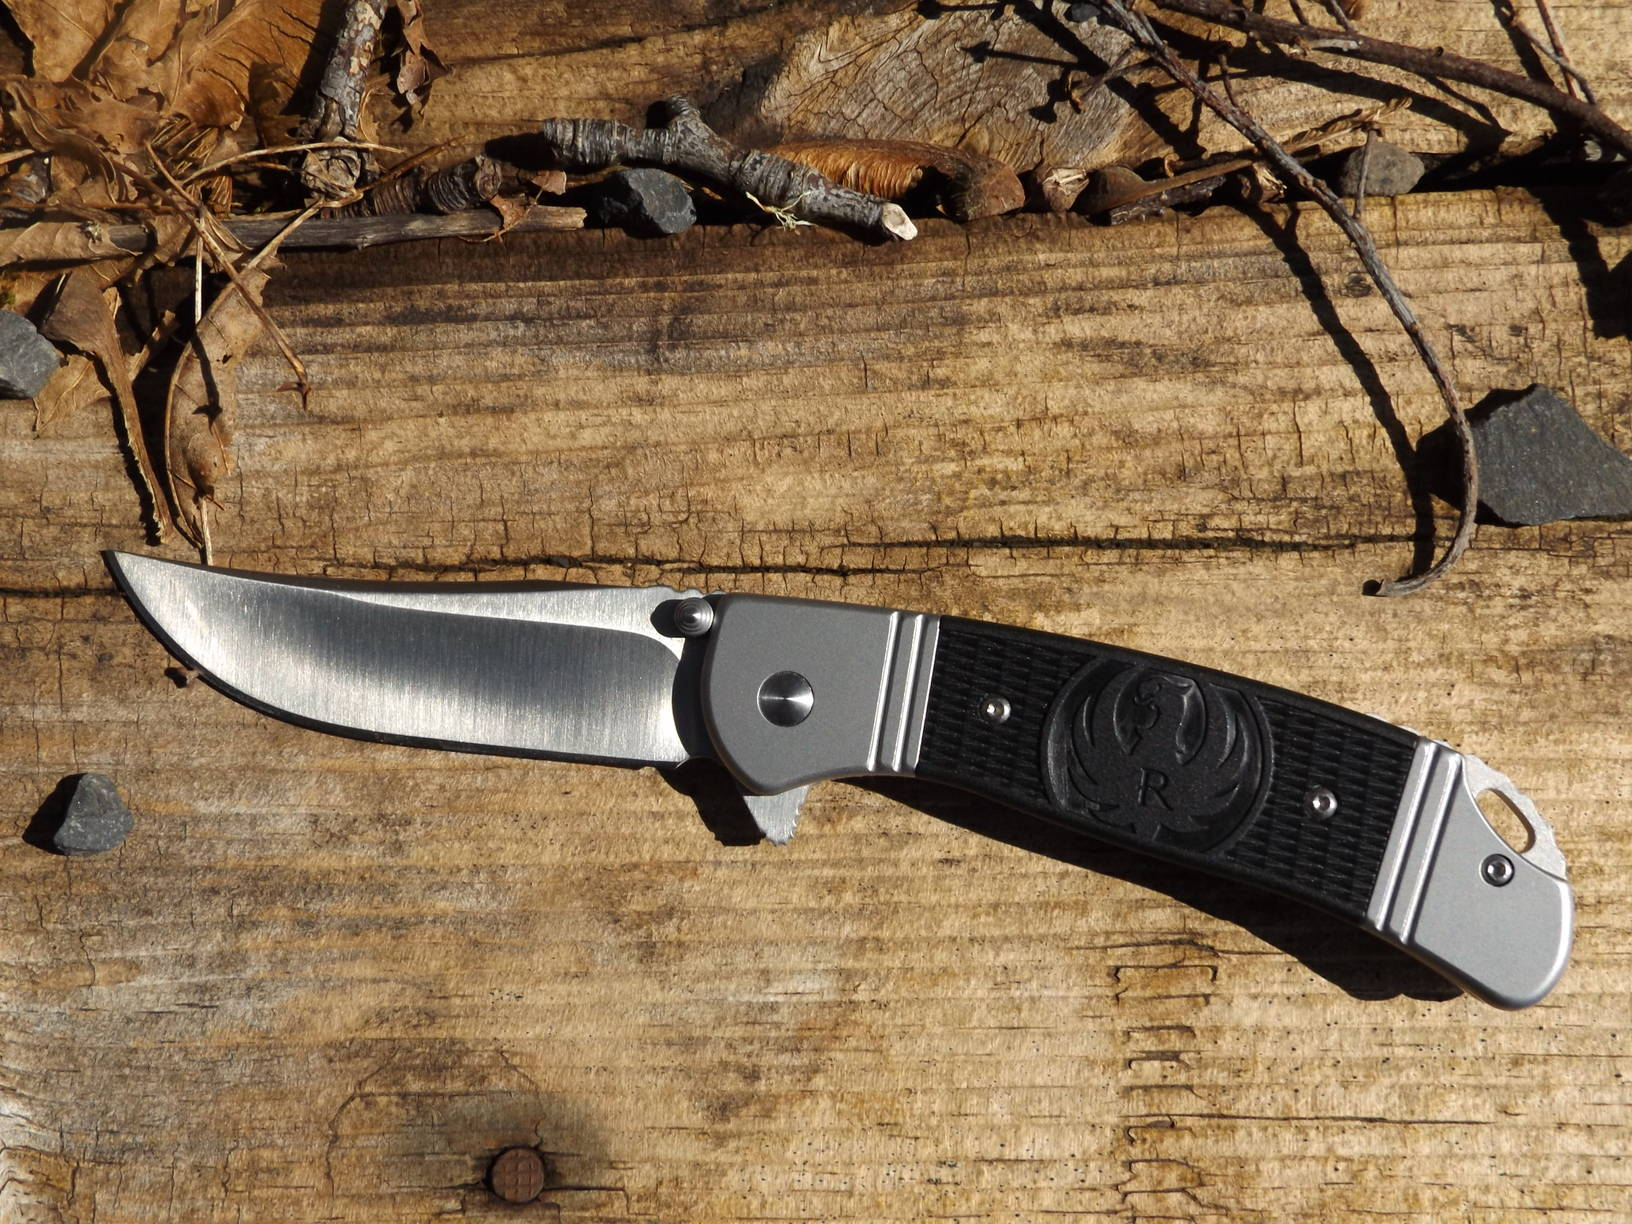 CRKT/Ruger Hollow-Point Folder, by Pat Cascio